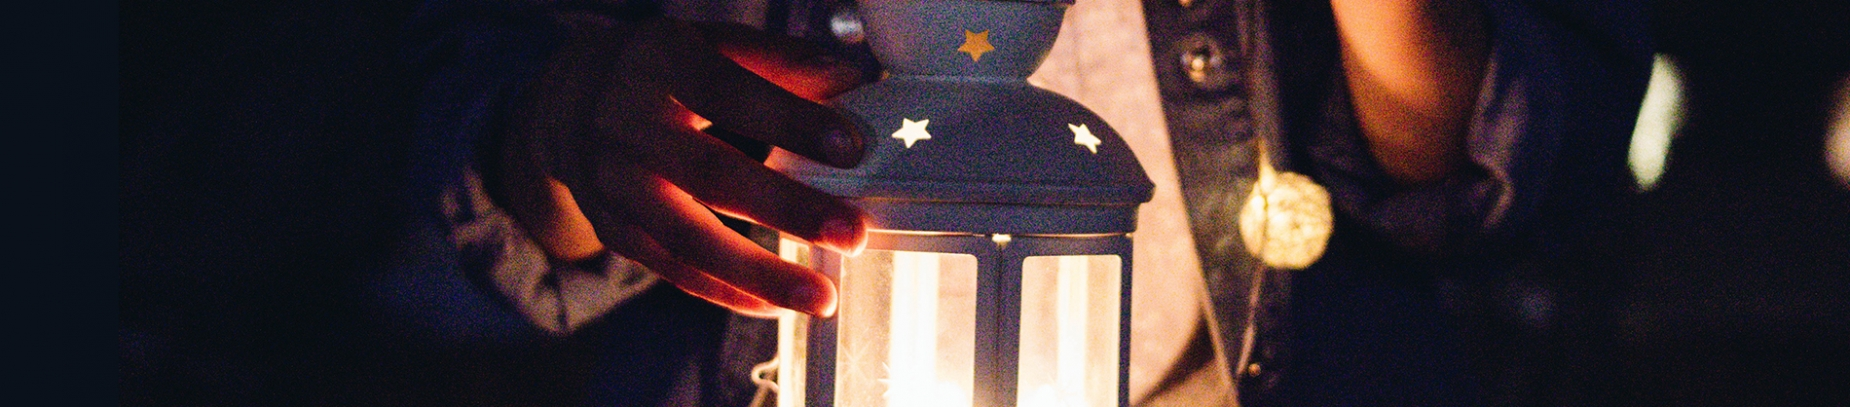 A women holding a lit lantern with stars on it